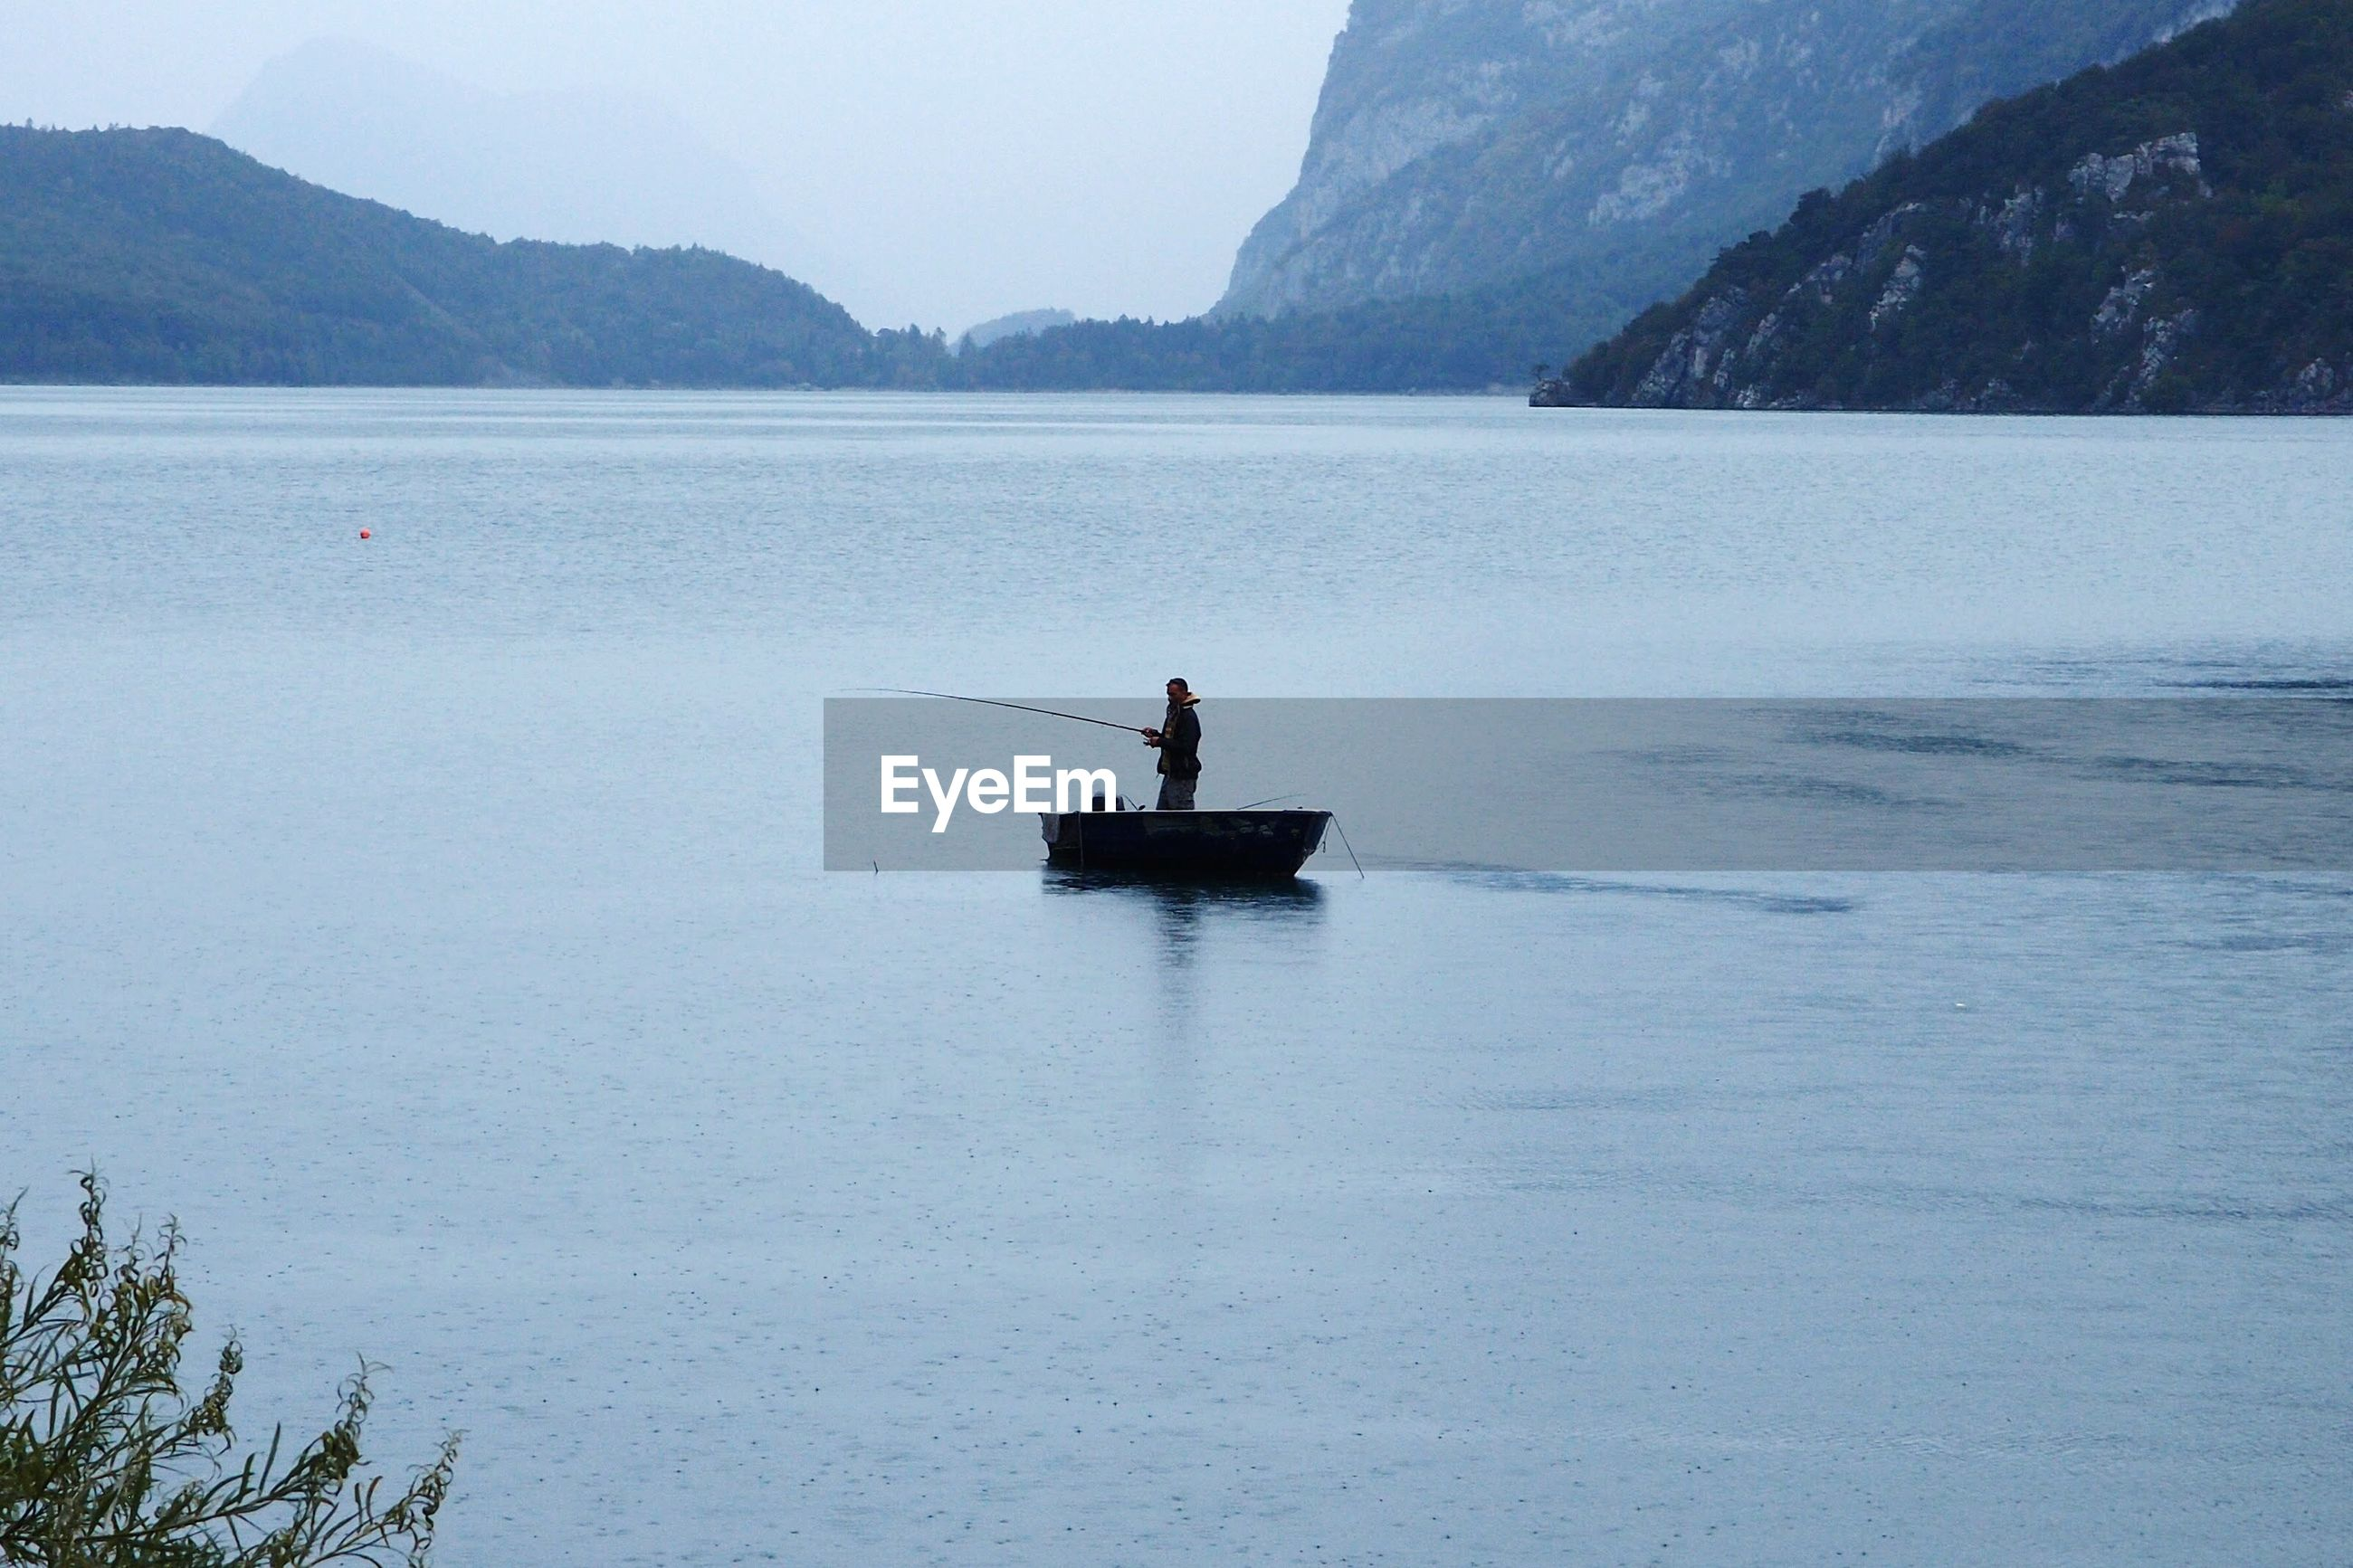 Person fishing while standing on boat in lake